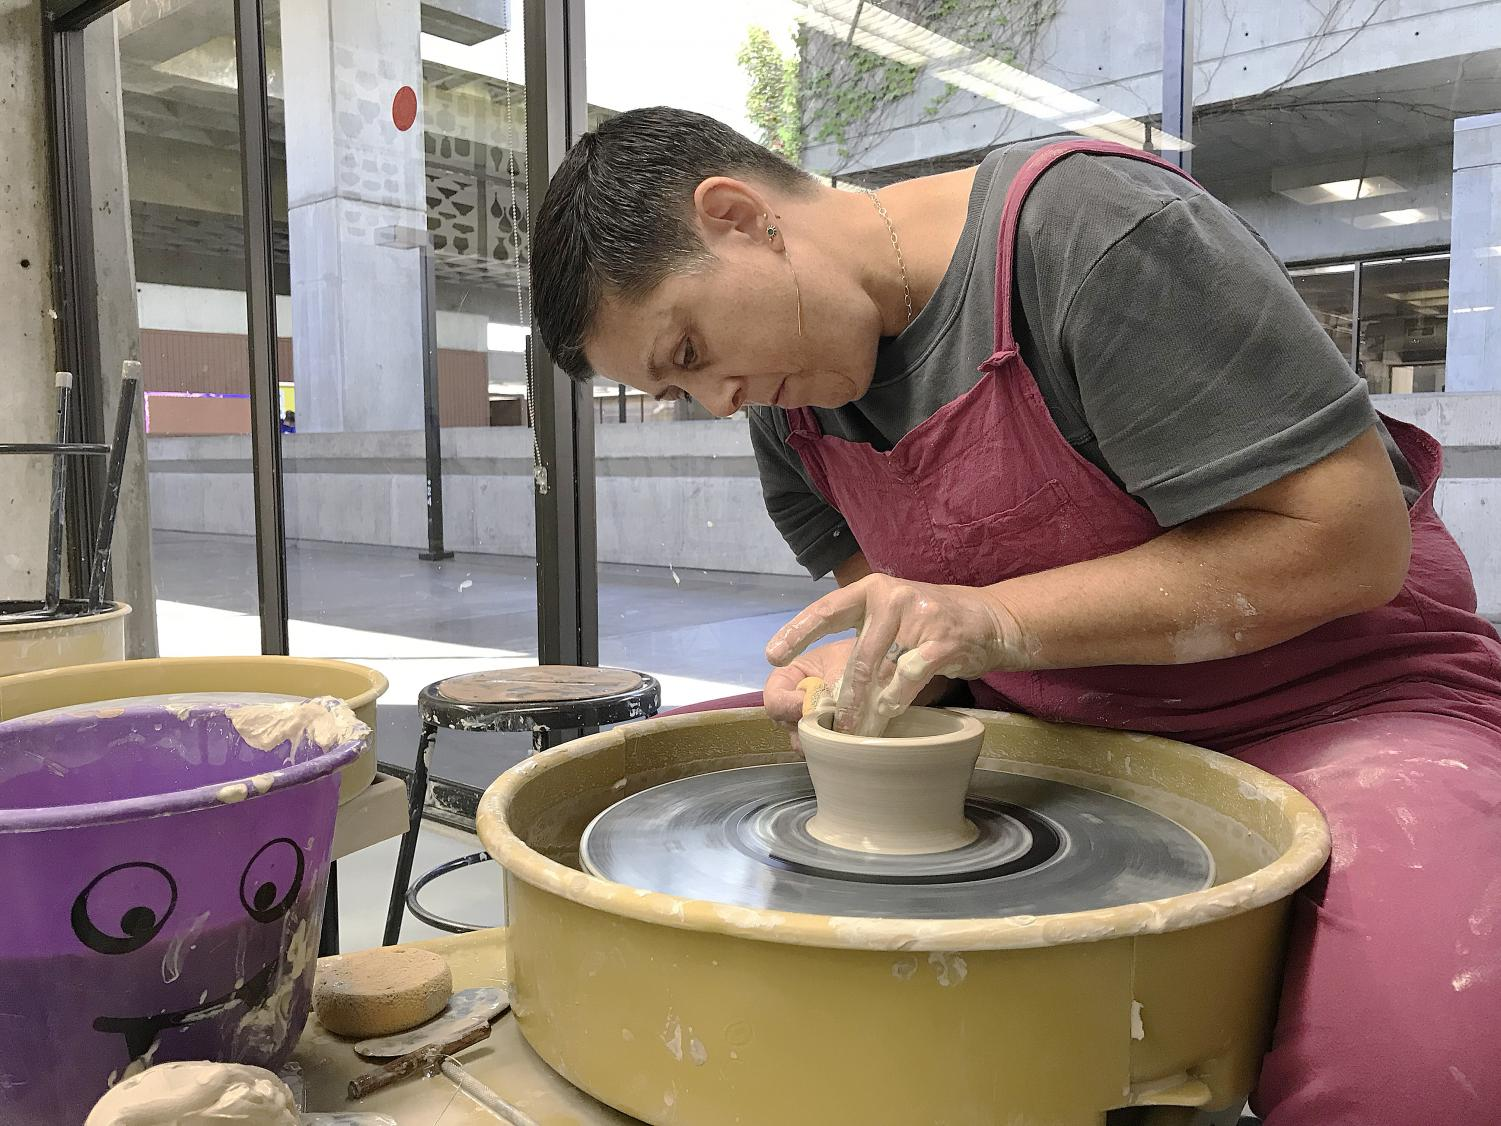 Ceramics student Tammie Lurley, who is donating bowls to the Empty Bowls event, crafts a ceramic bowl in the Art Department Oct. 3.